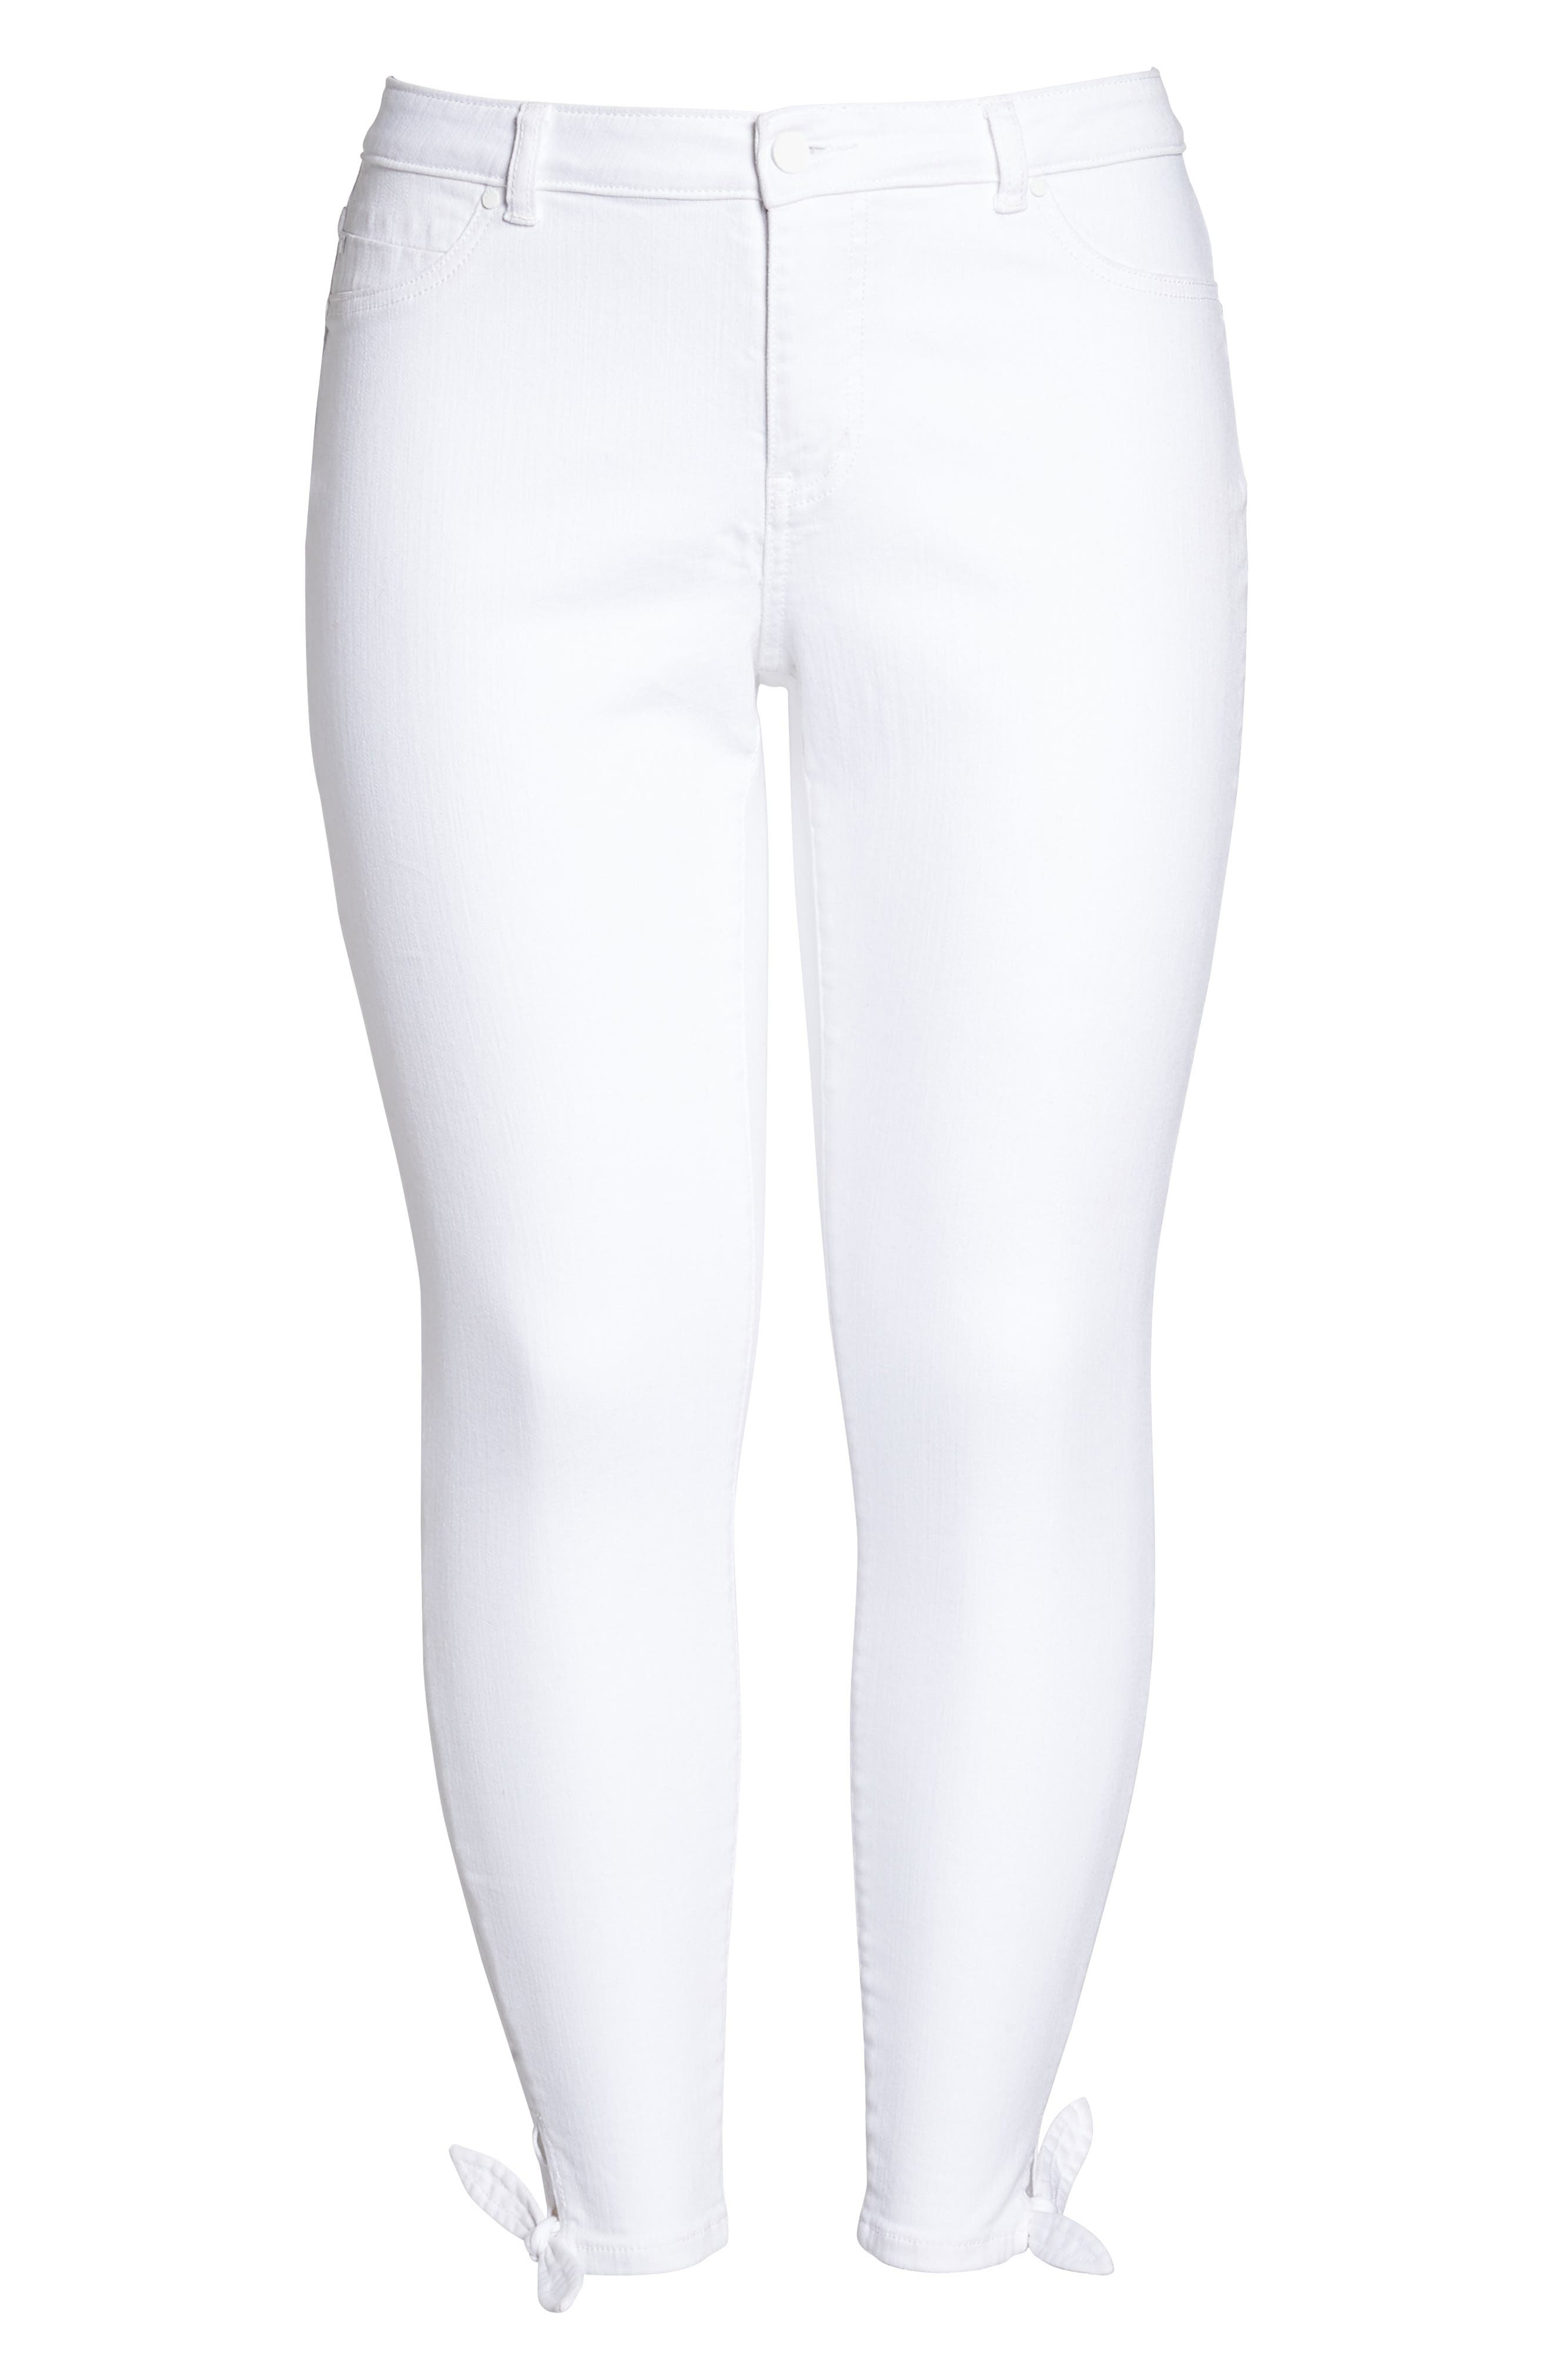 Tie Ankle Skinny Jeans,                             Alternate thumbnail 7, color,                             White